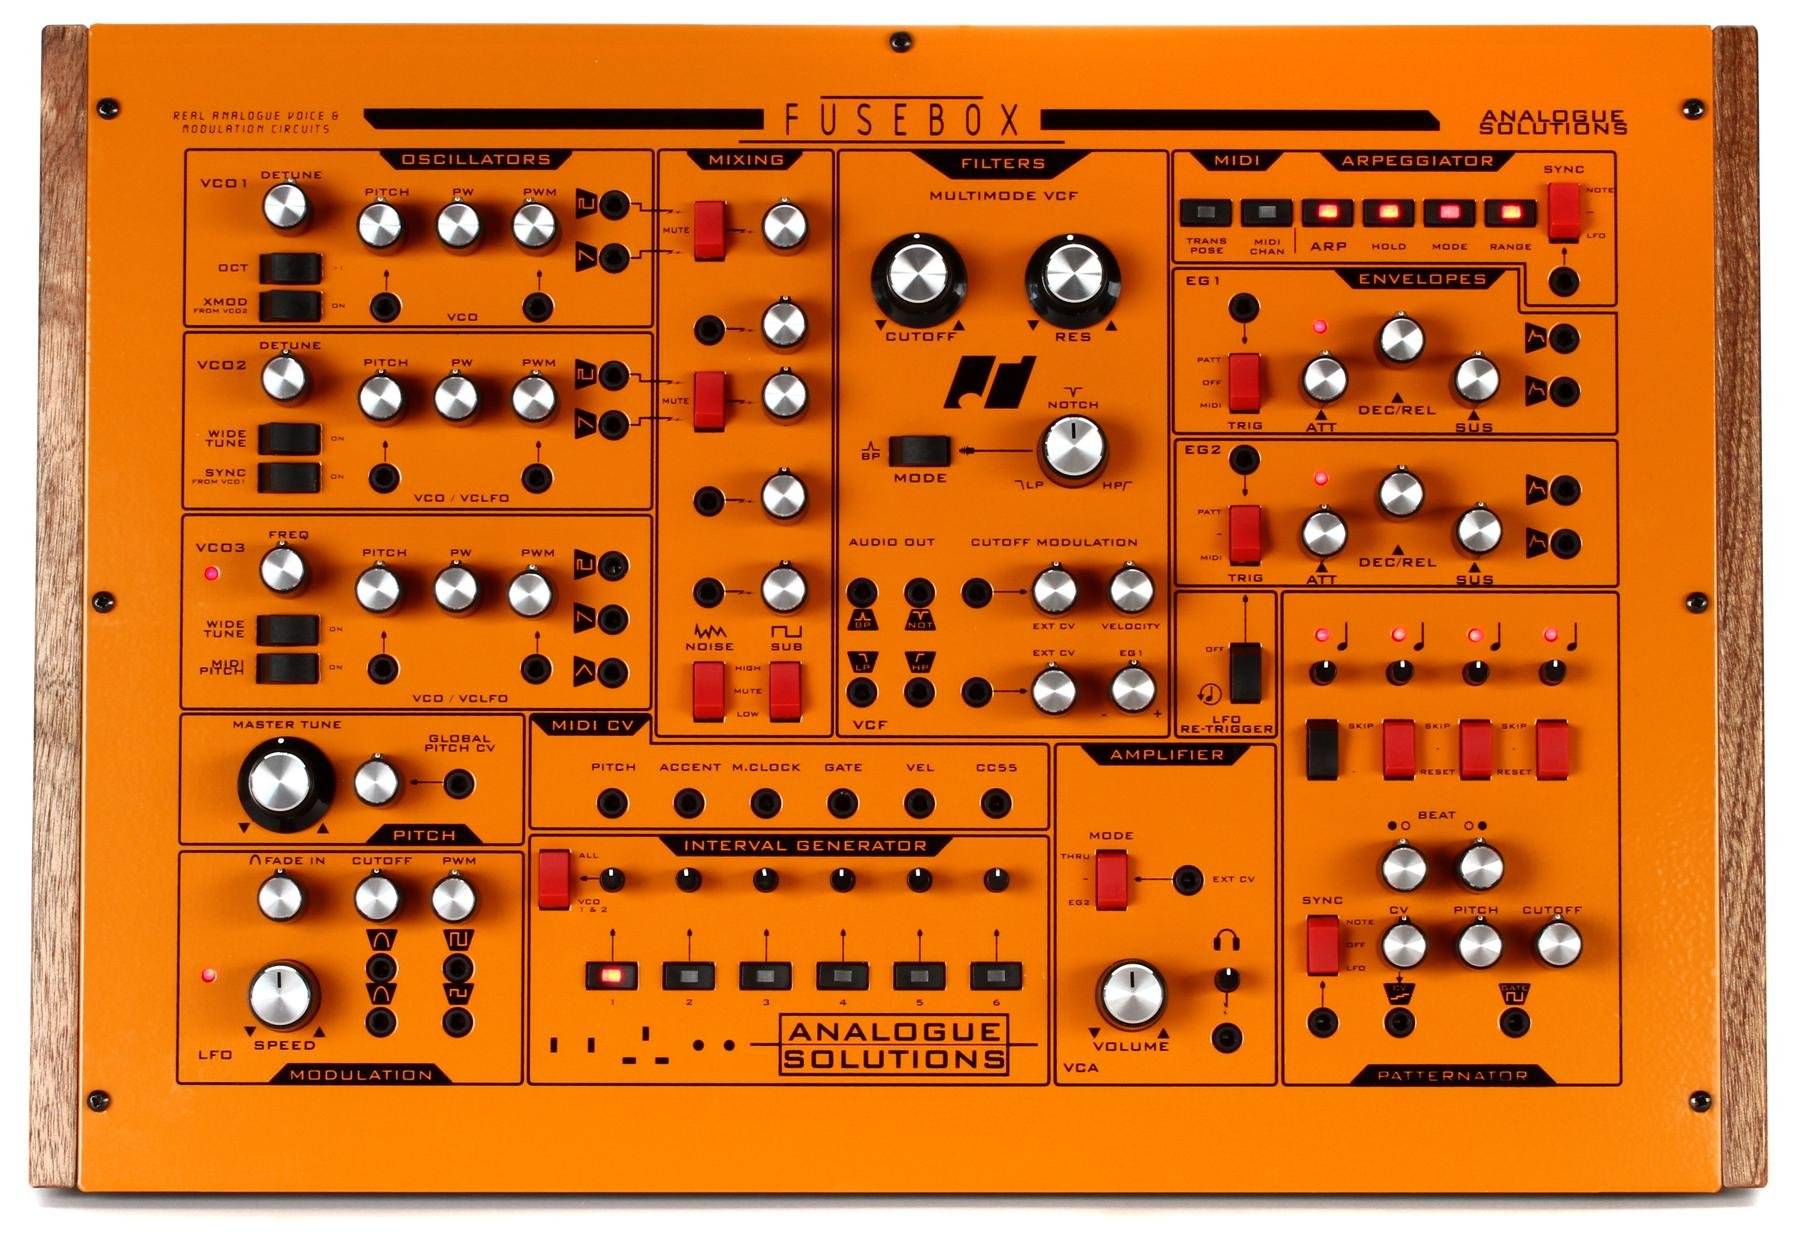 Fusebox xlarge analogue solutions fusebox synthesizer with patternator sweetwater fuse box credit card processing at eliteediting.co